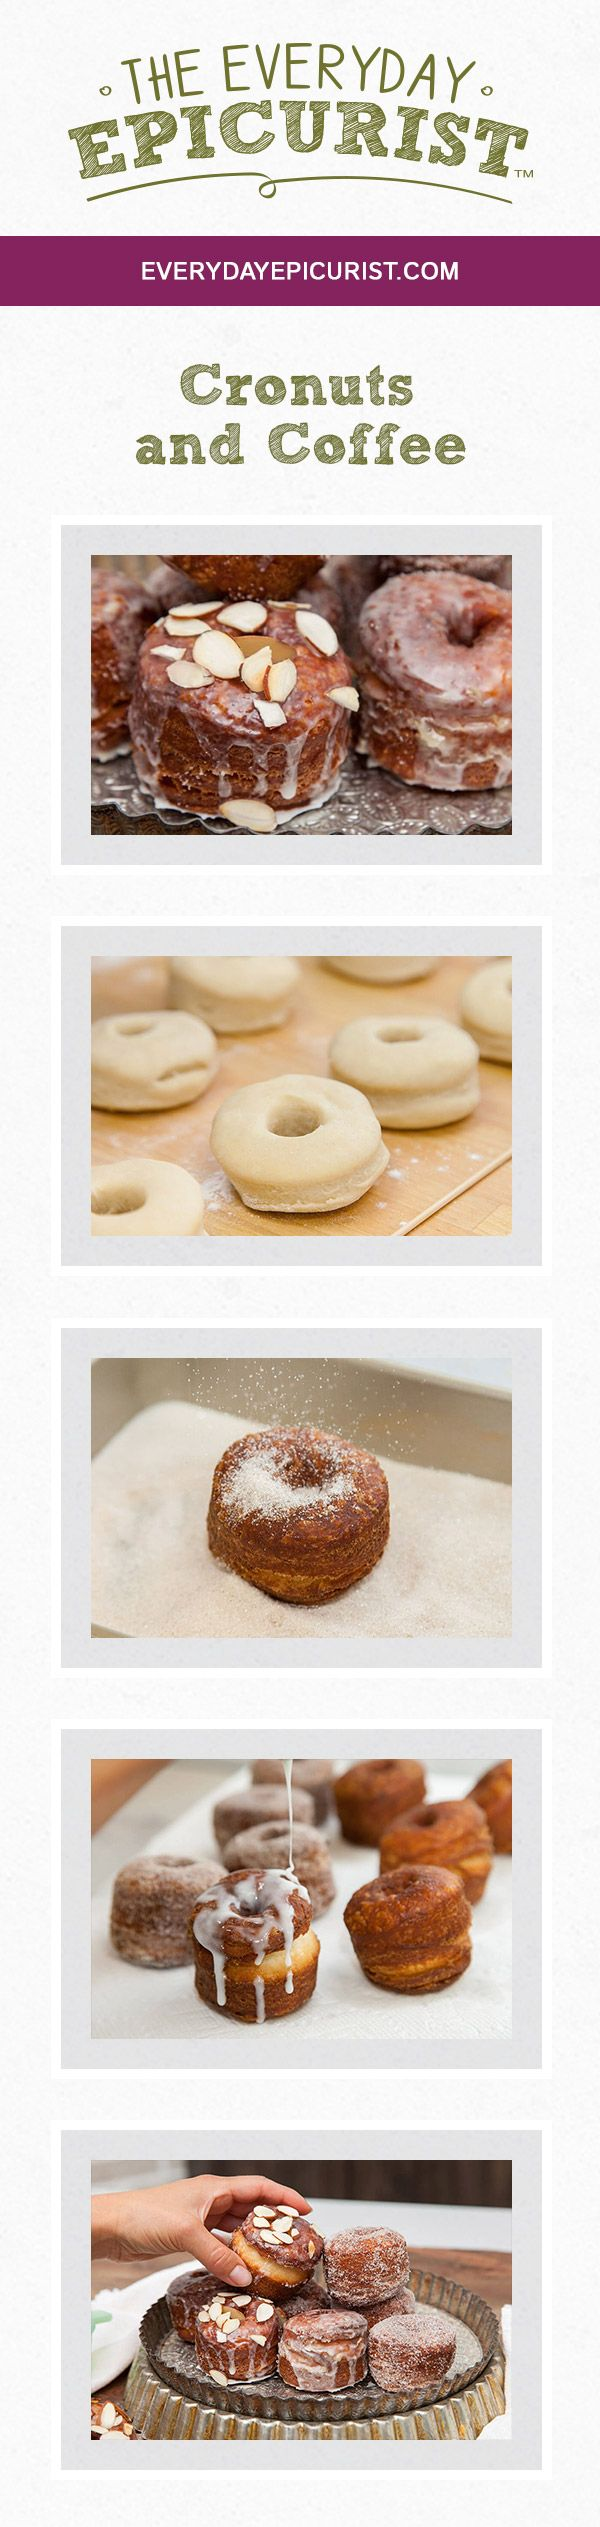 Cronuts aren't just fried dough, they're fried PUFF PASTRY. The puff pastry is what makes these confections the holy mother of fried dough.